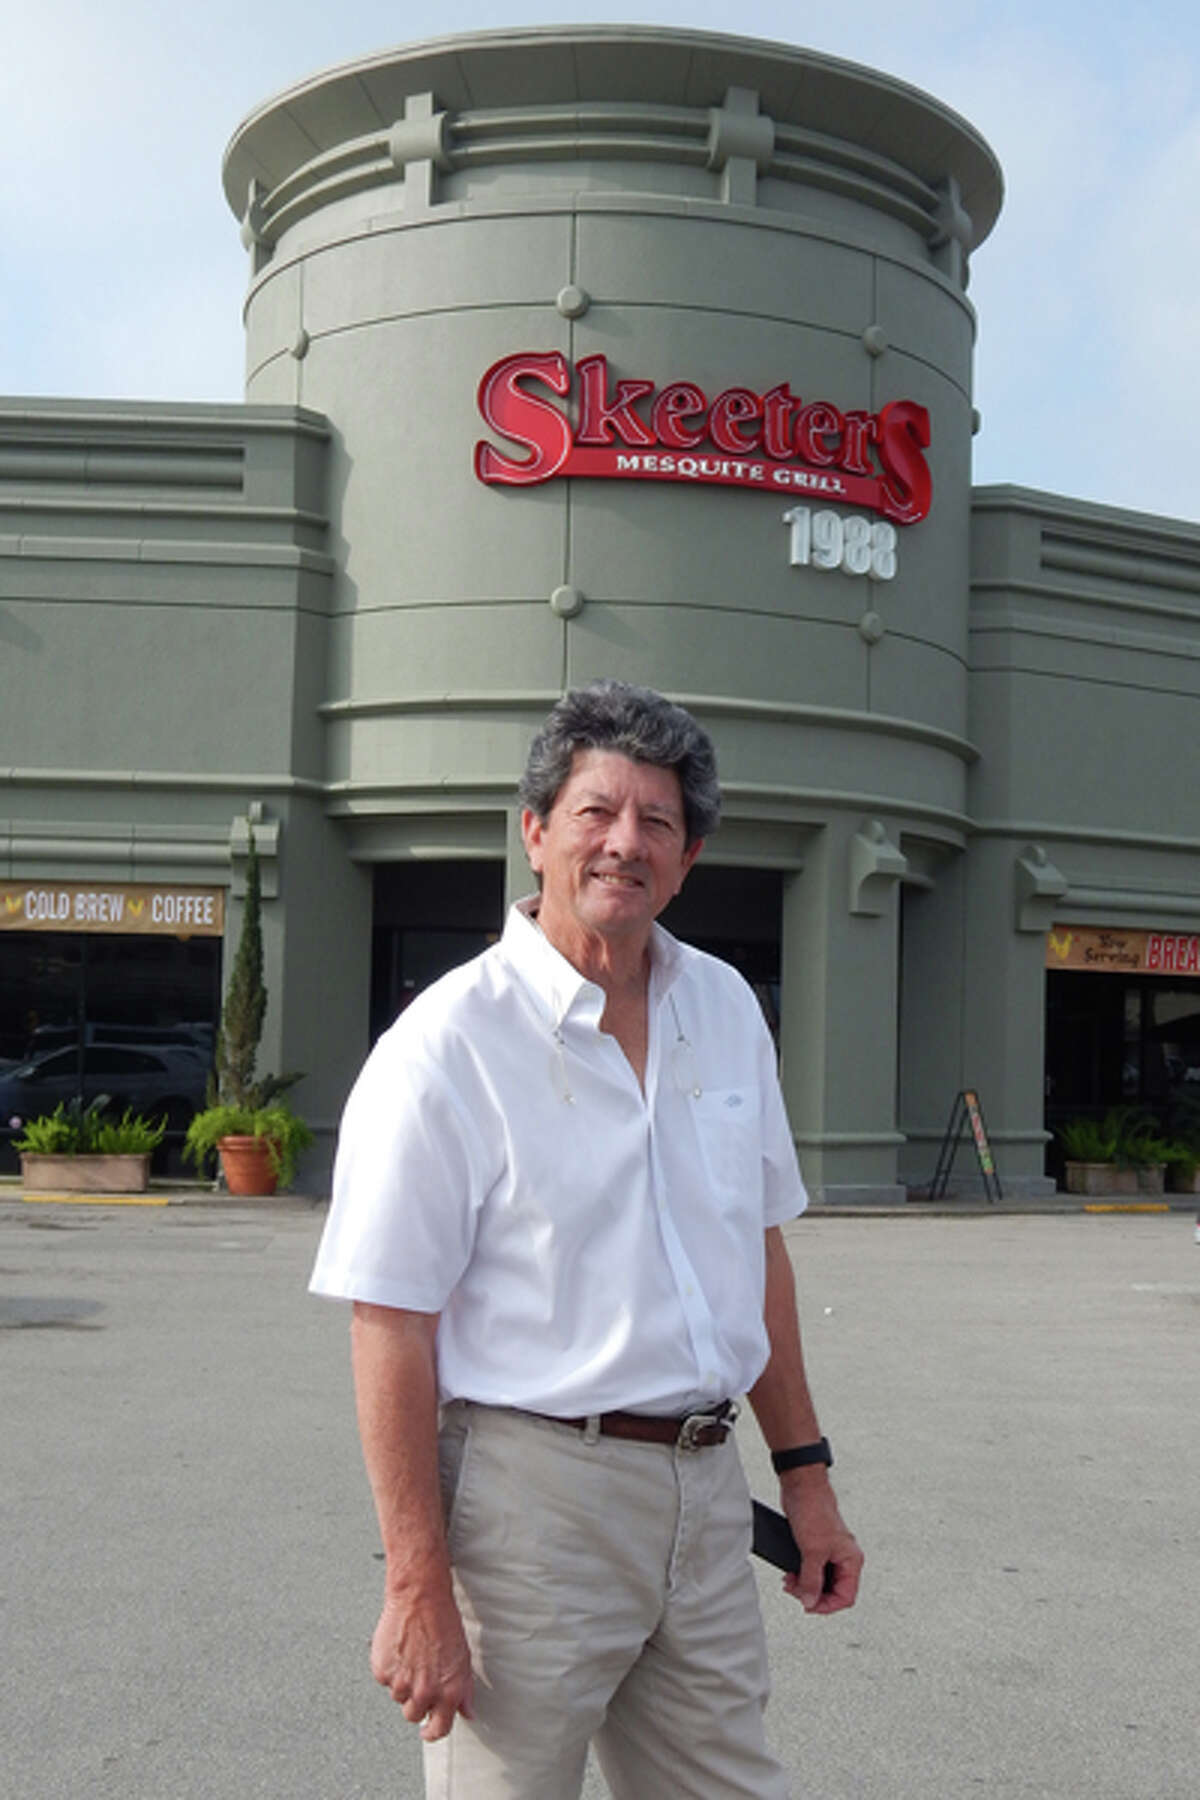 Owner Gary Adair in front of his original Skeeter's Mesquite Grill which was founded in 1988.